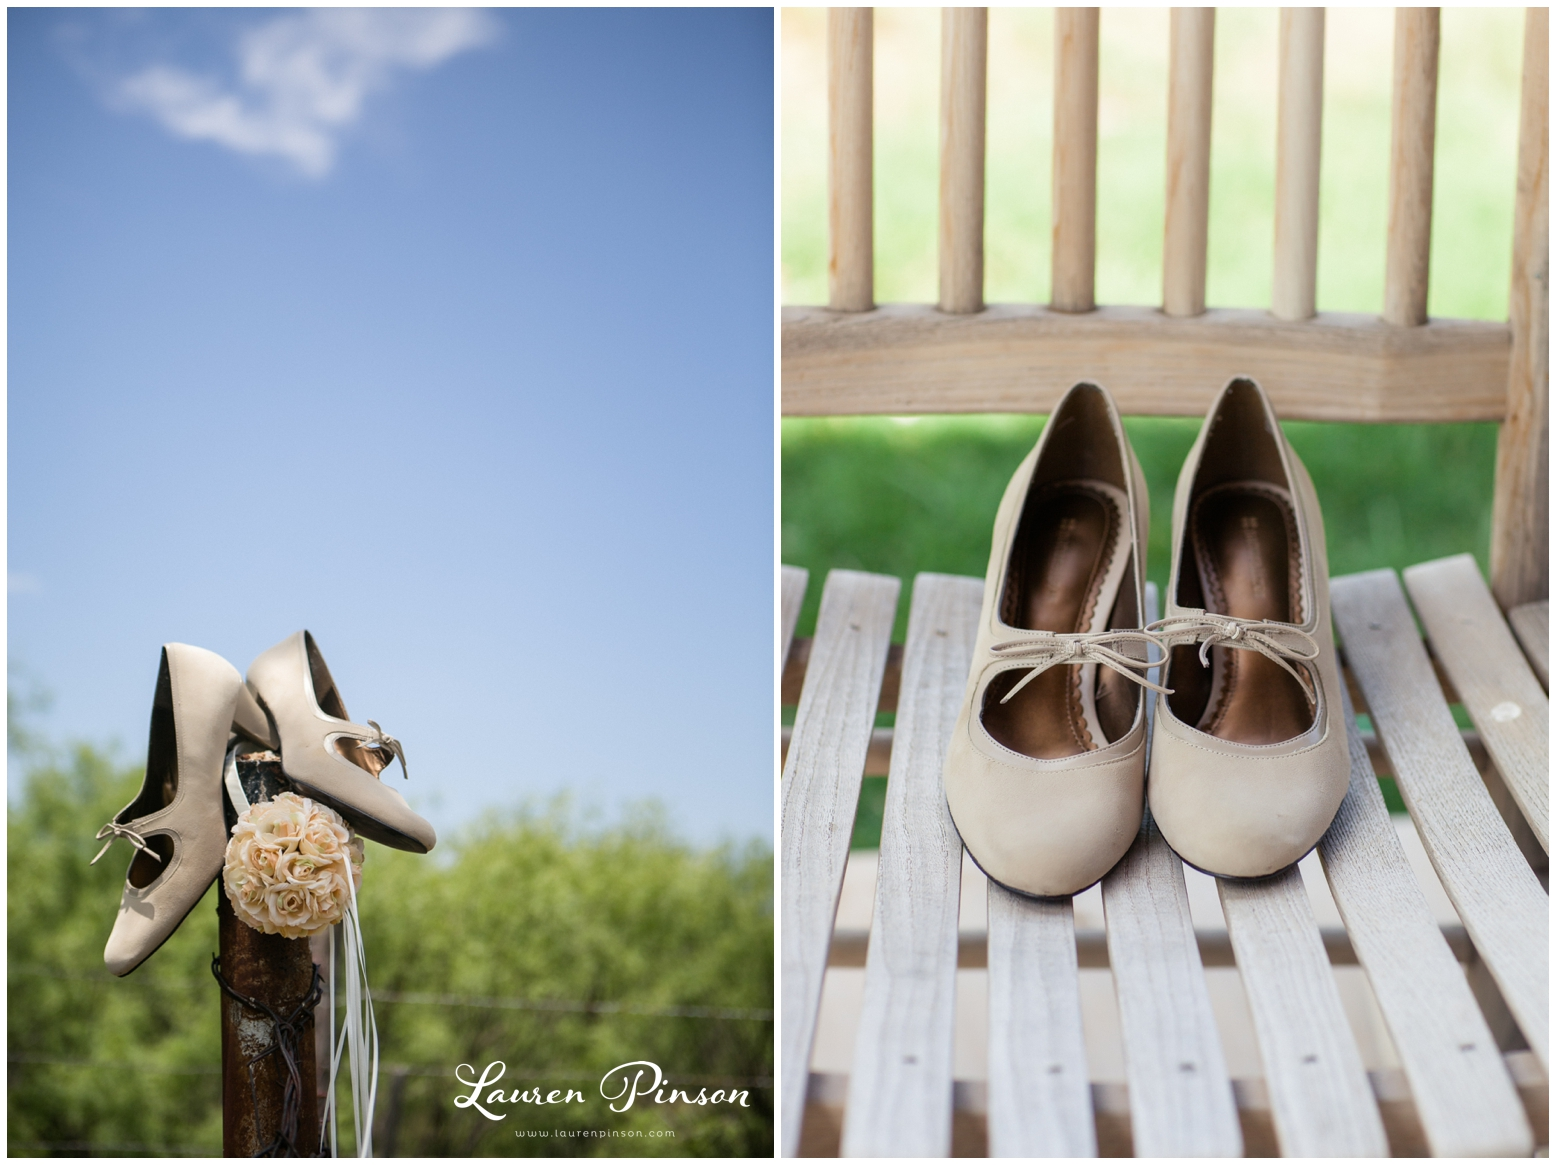 wichita-falls-coyote-ranch-resort-wedding-texas-photography-family-ceremony-balloons-rustic-lace_0305.jpg